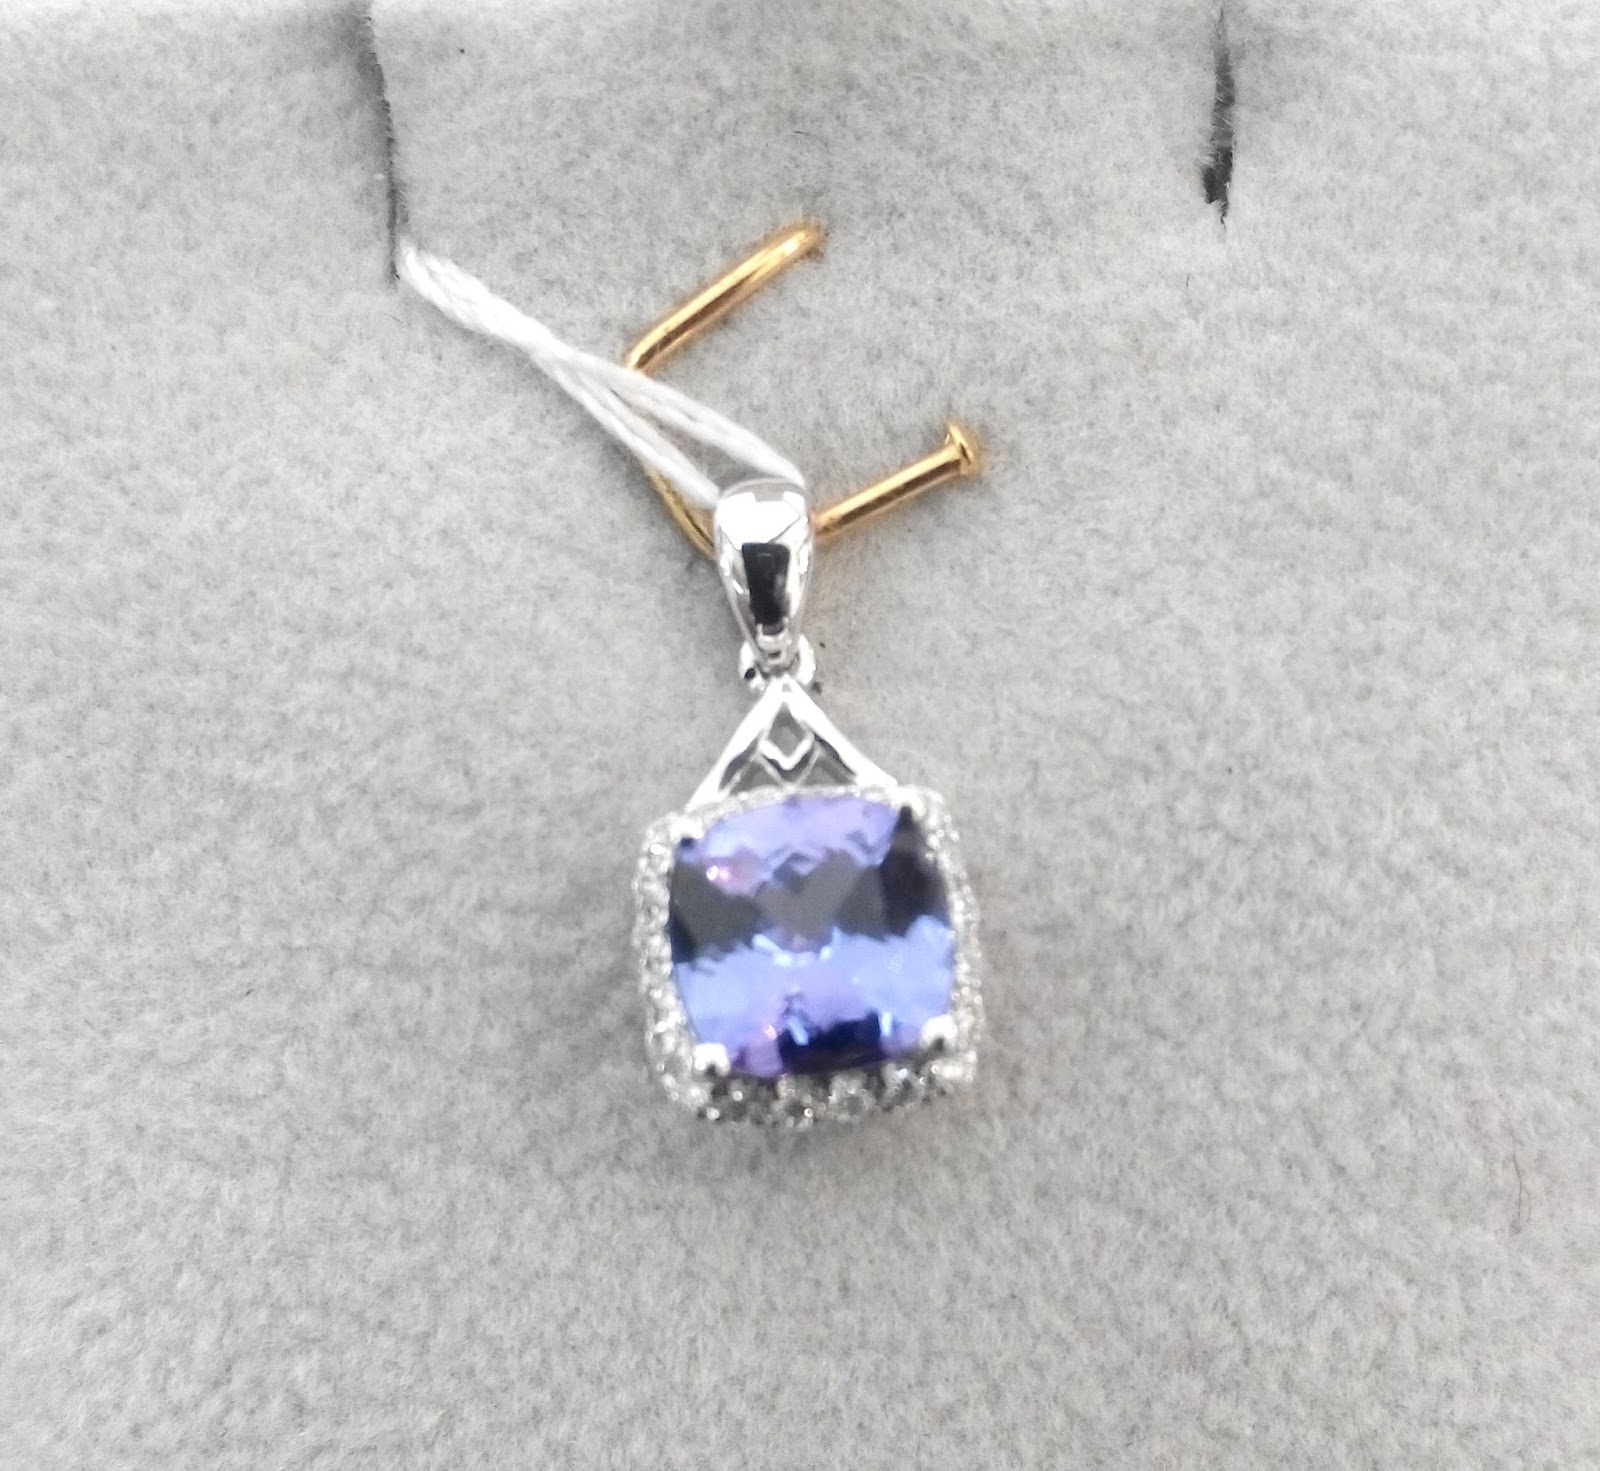 necklace ksvhs diamond investment large tanzanite round k jewellery gold grade modern cute